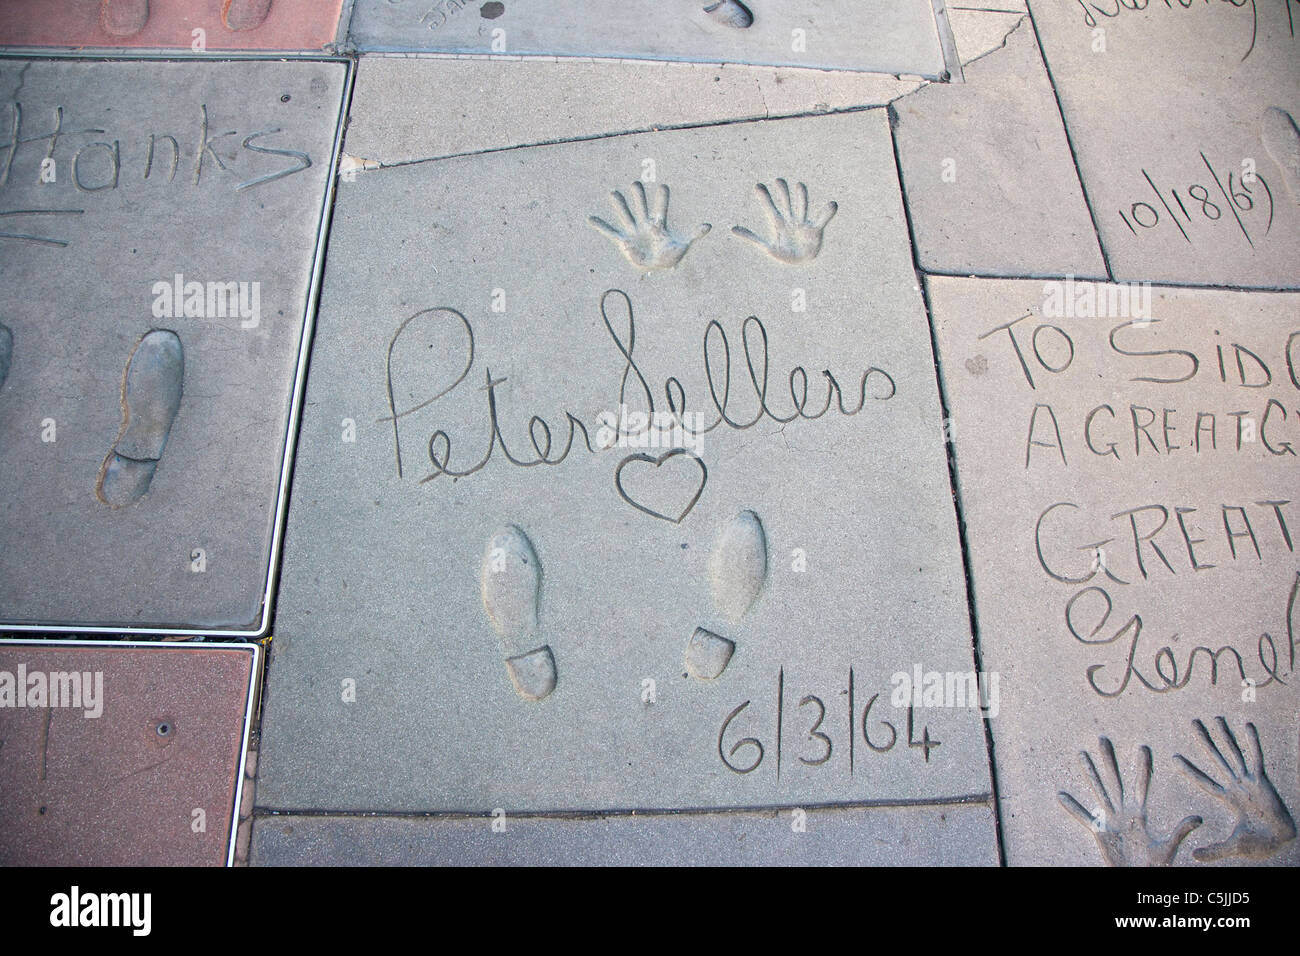 Peter Seller's hand and foot prints at Grauman's Chinese Theatre, Hollywood, Los Angeles, California, USA - Stock Image